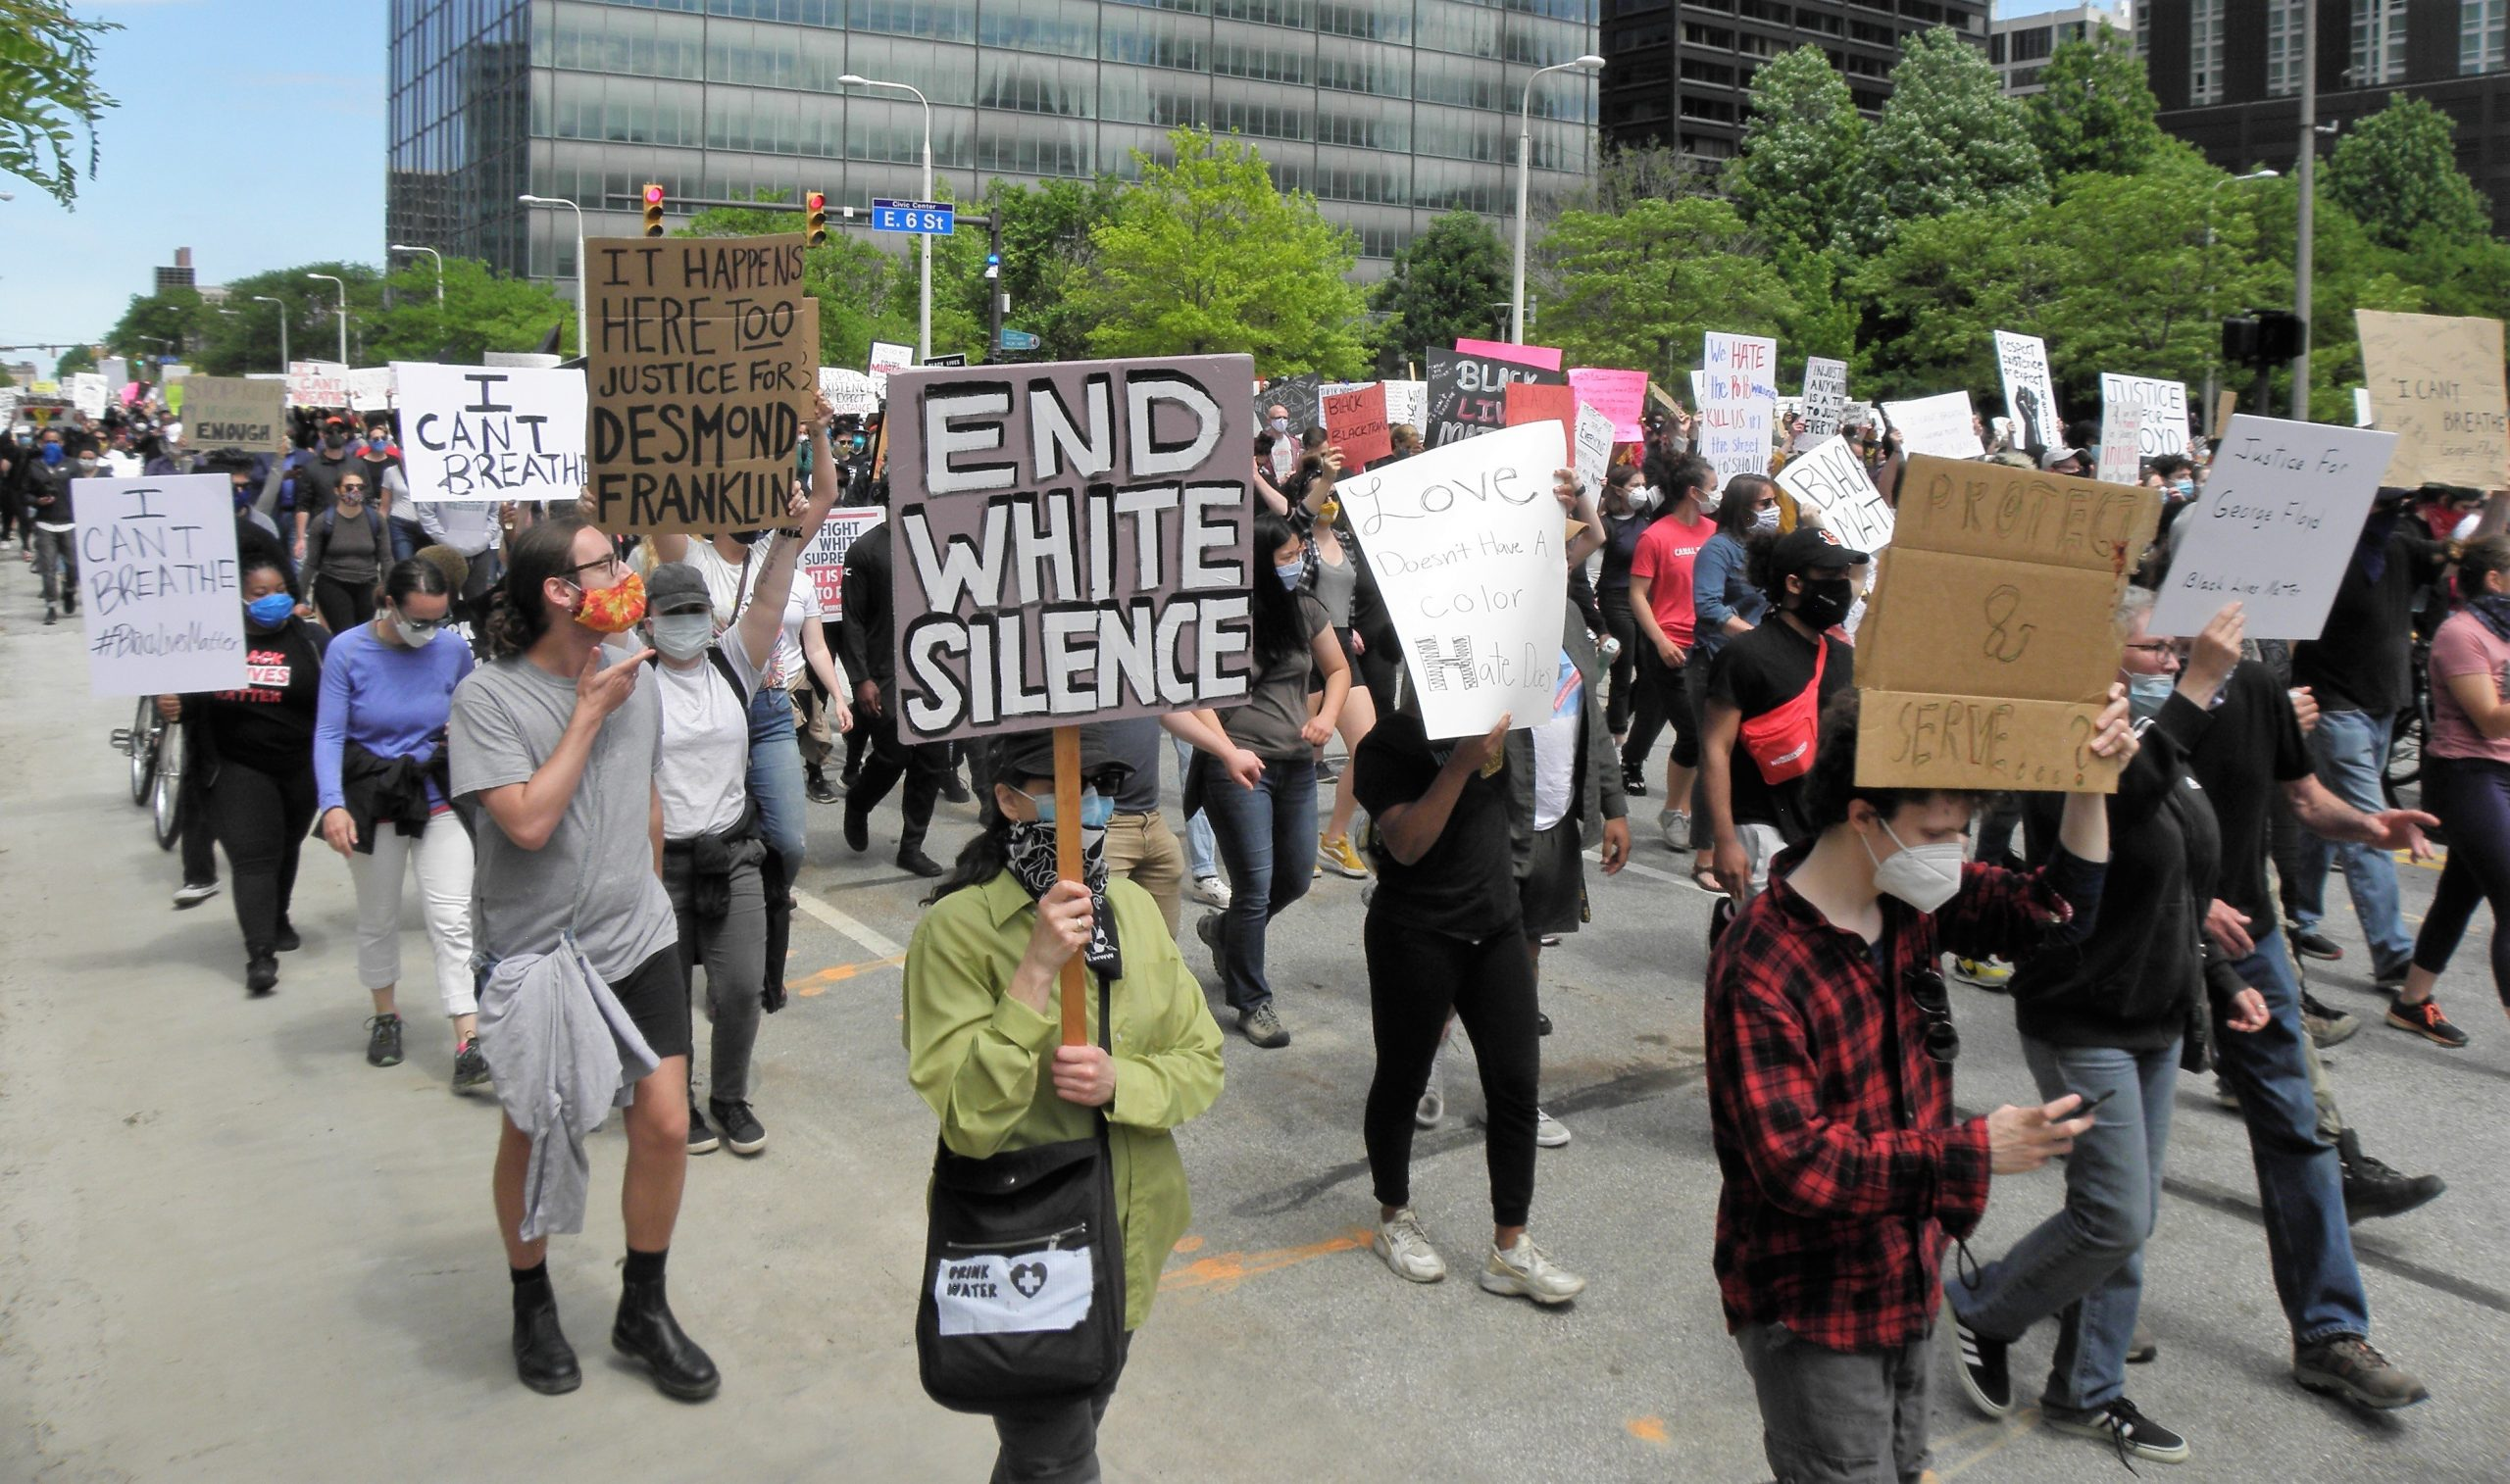 BLM CLE demo end white silence, 5/30/20